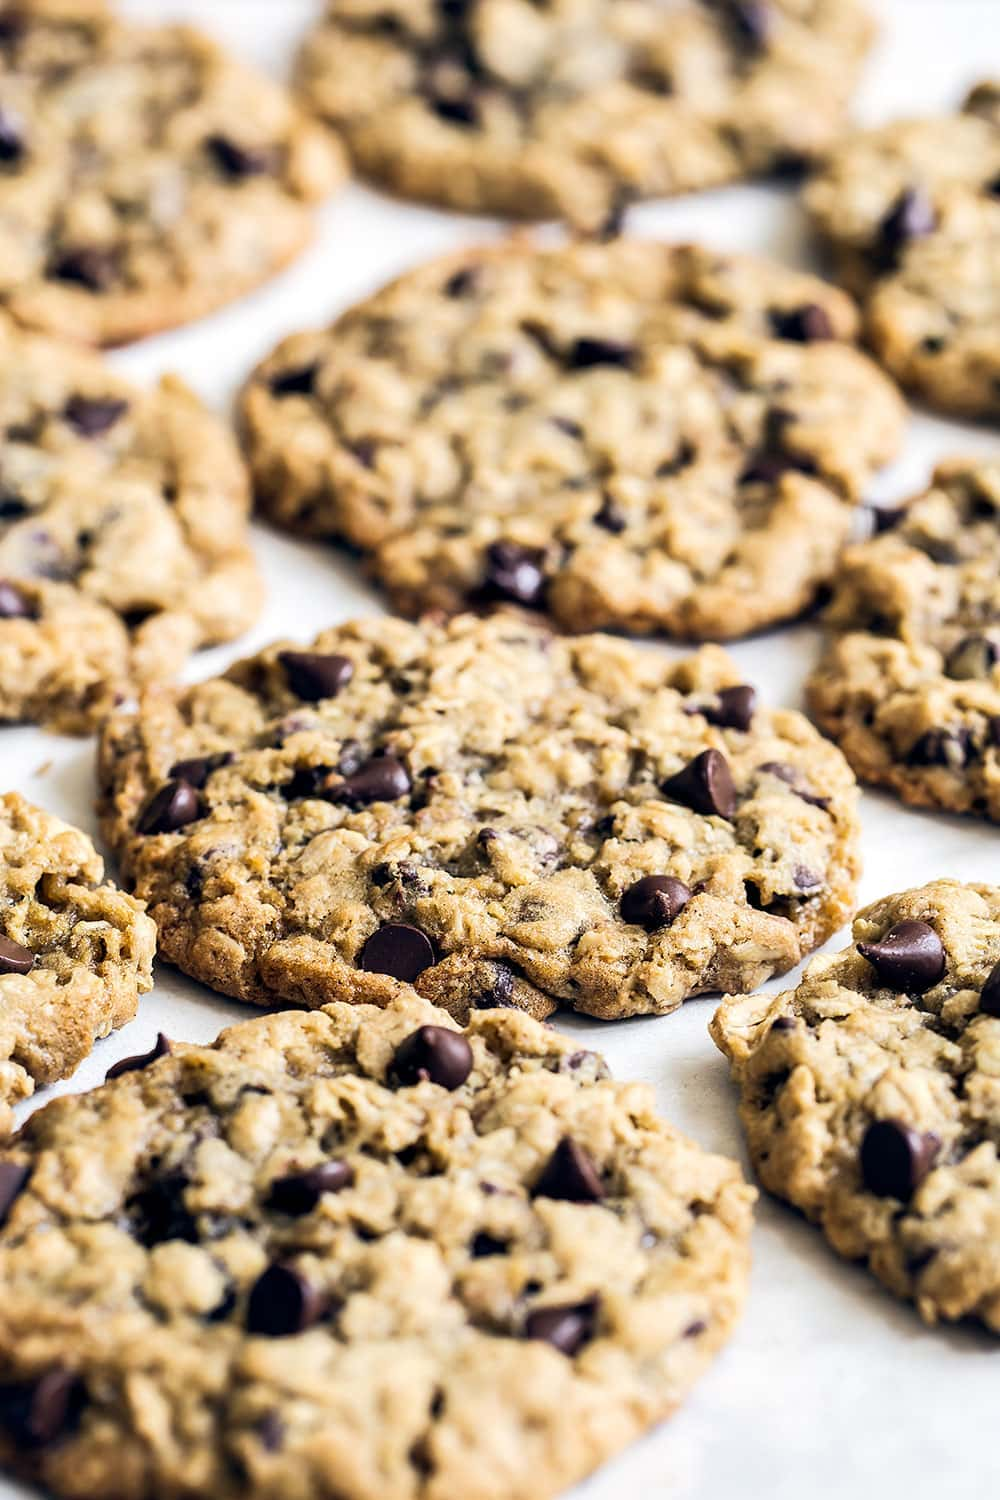 Soft and chewy oatmeal chocolate chip cookies cooling on the counter